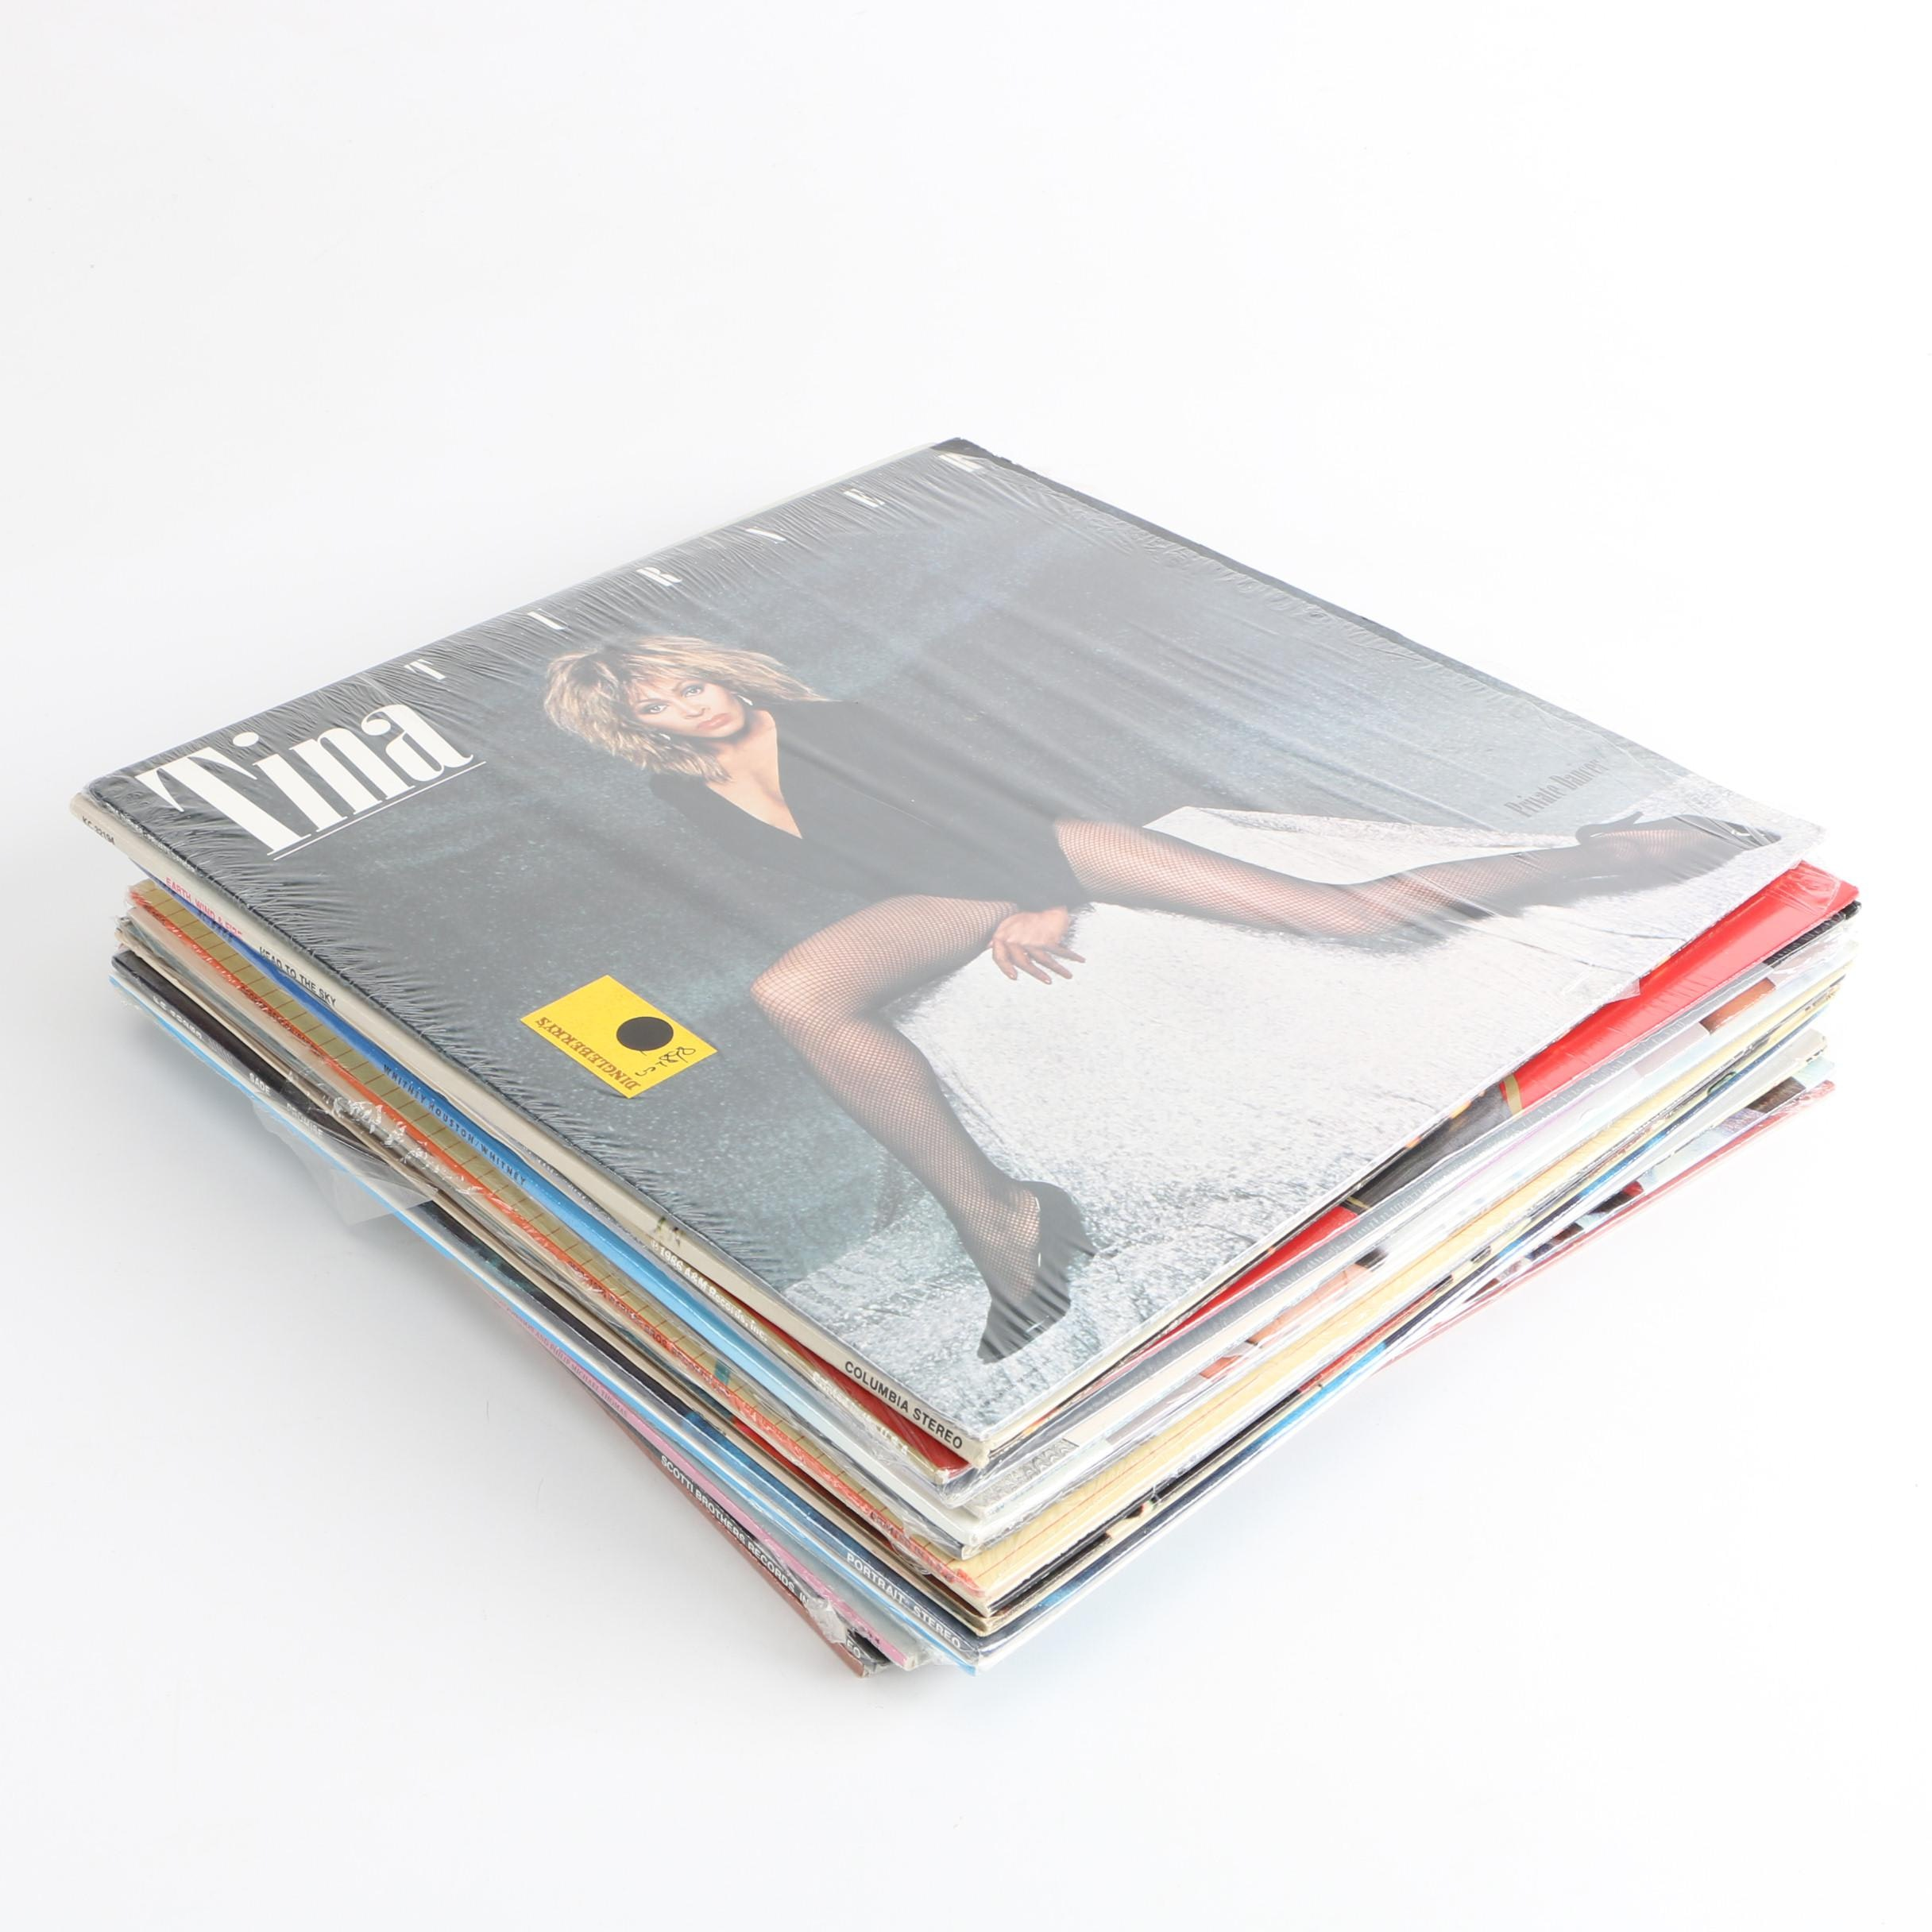 Tina Turner, Whitney Houston, Survivor and Other R&B and Rock LPs